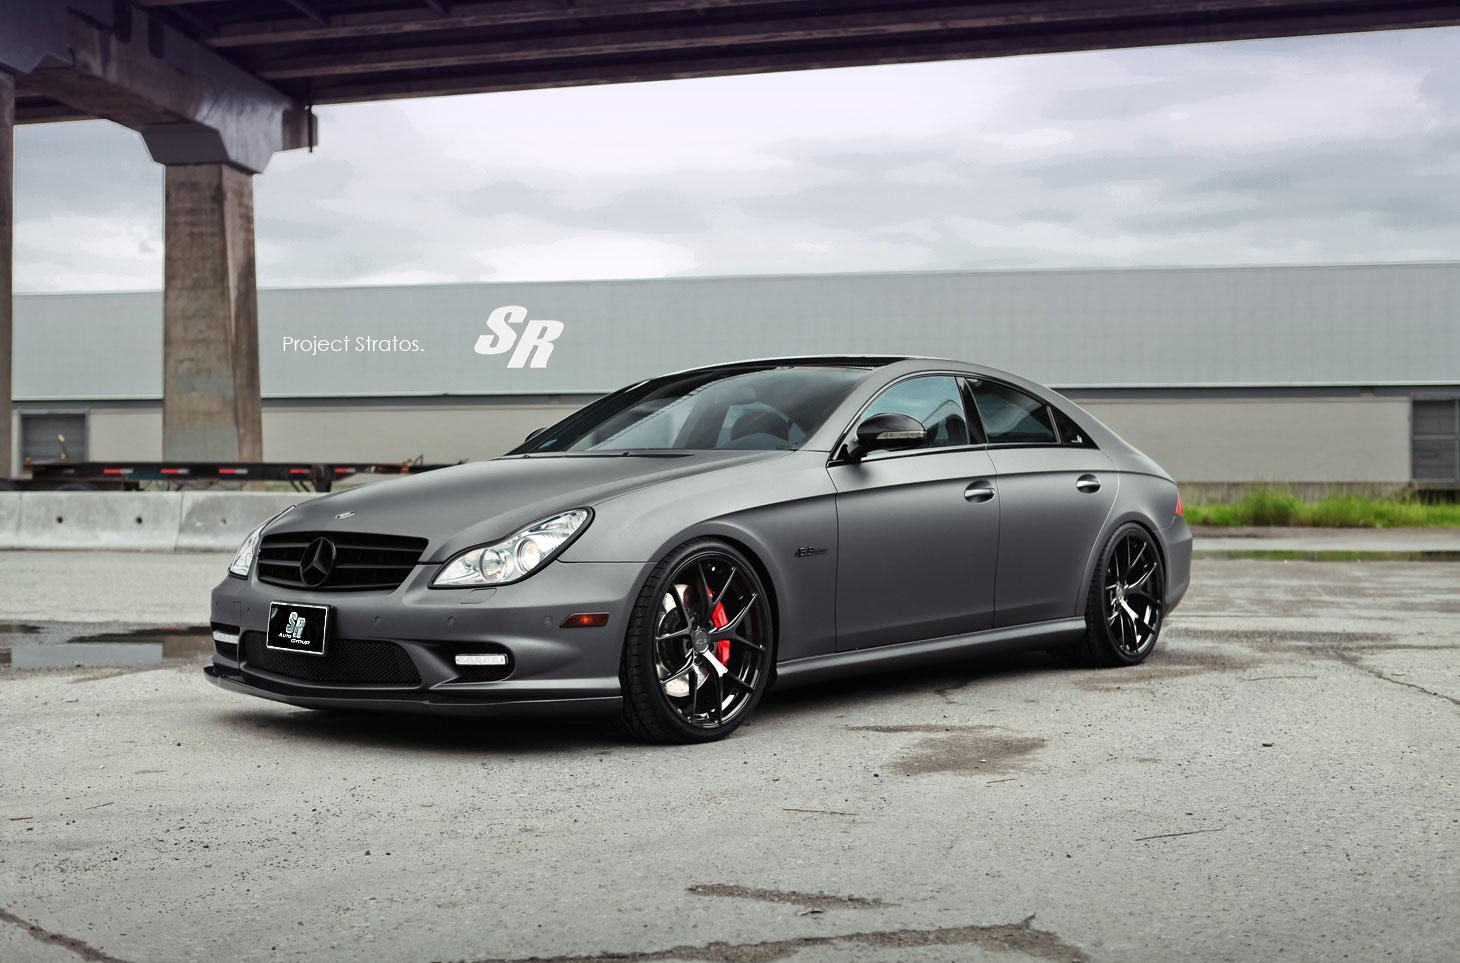 Mercedes-Benz CLS63 AMG jako Project Stratos 6